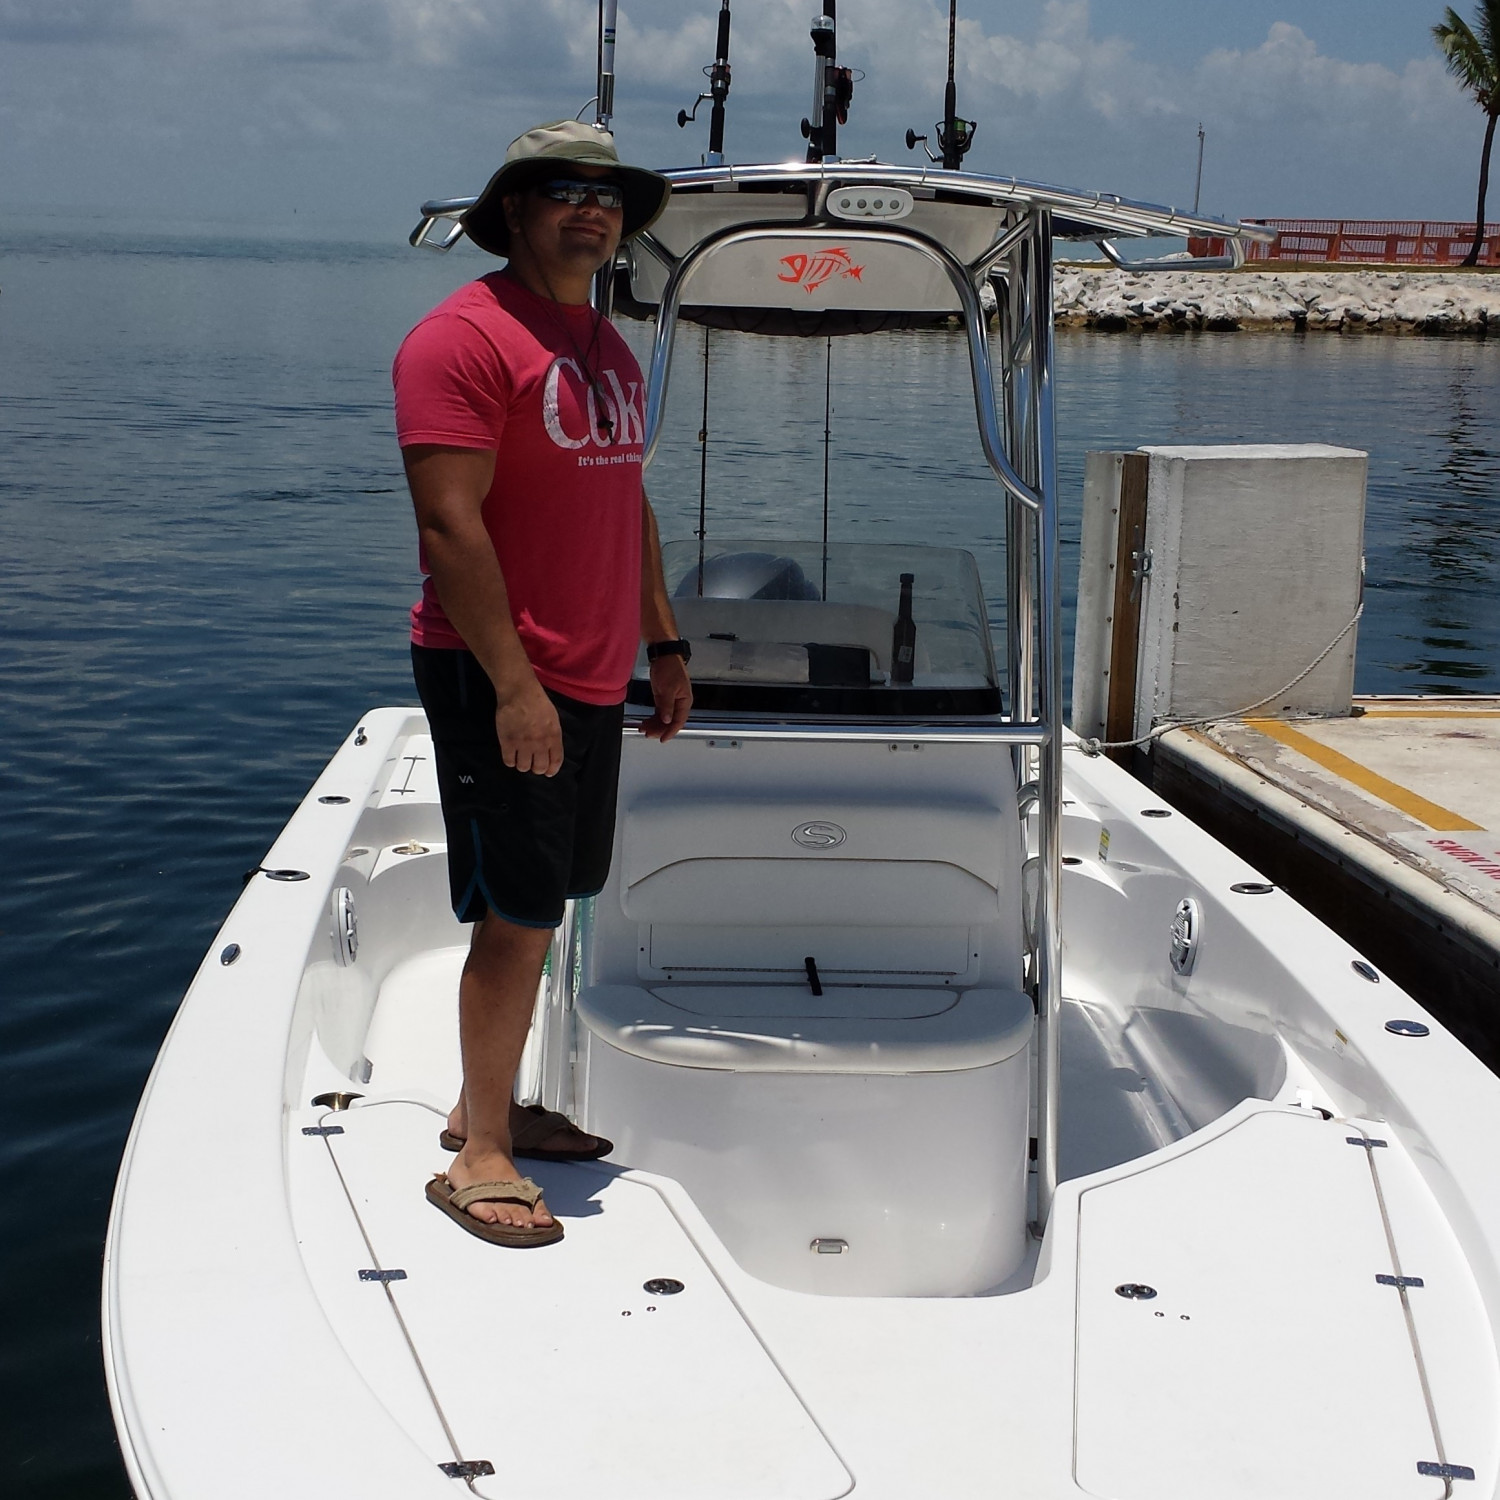 Title: Outdoor Resorts, Long Key Florida - On board their Sportsman Masters 227 Bay Boat - Location: Port Antigua sandbar, Islamorada, Florida. Participating in the Photo Contest #SportsmanFebruary2018